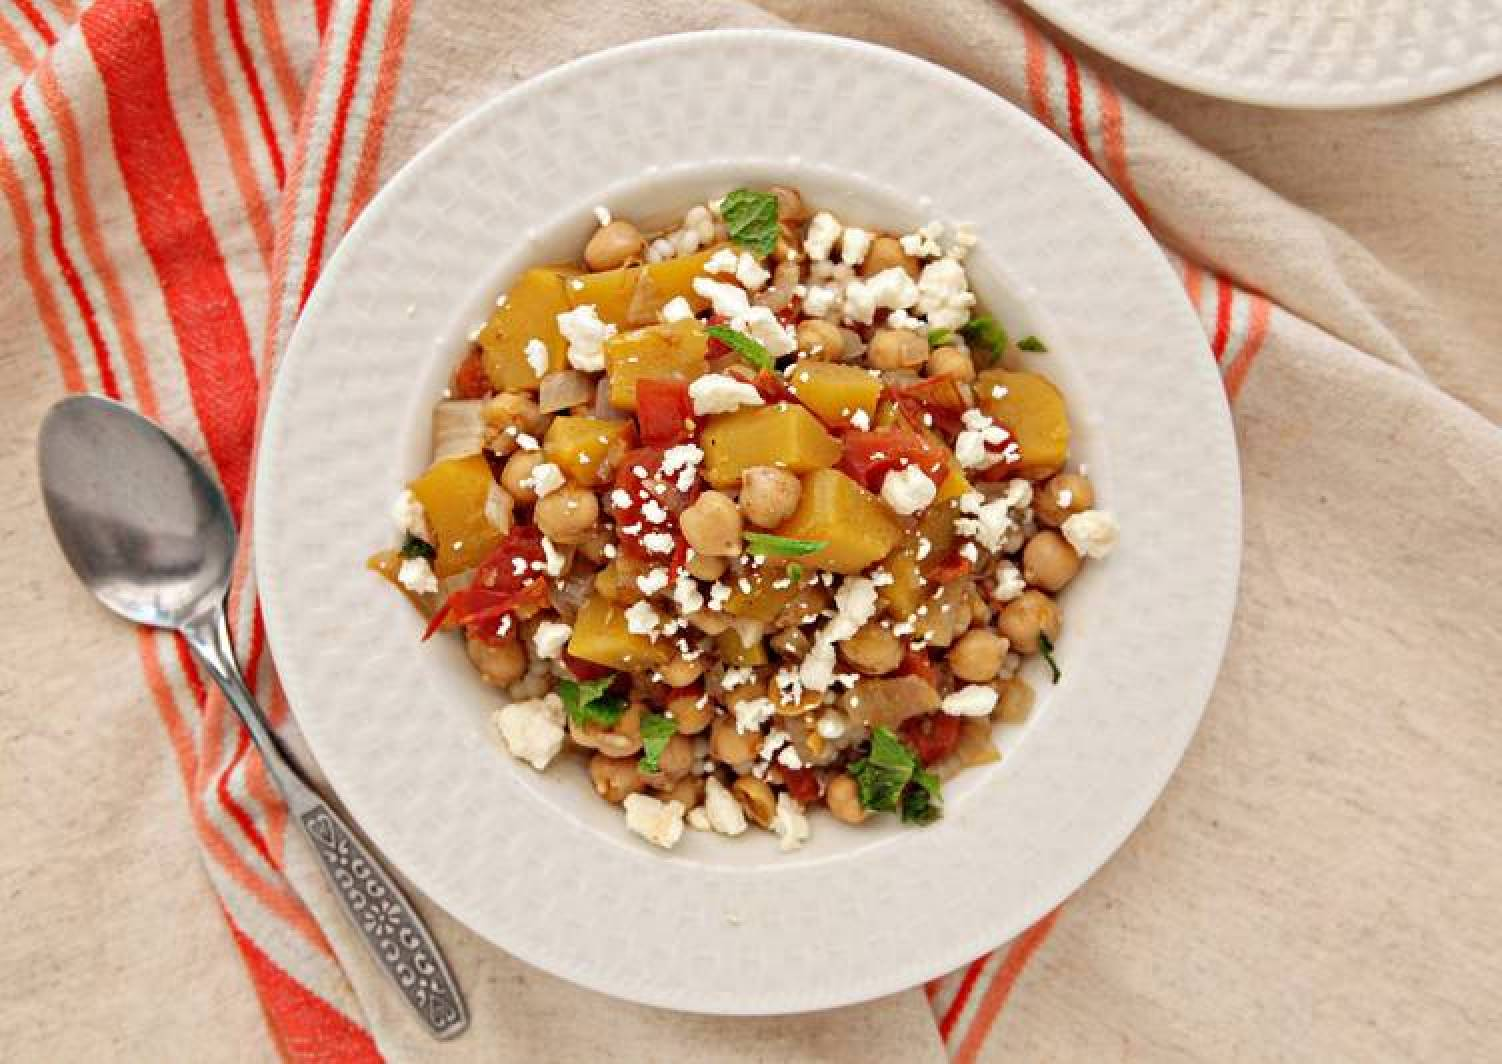 Acorn Squash and Chickpea Stew over Couscous with Feta and Mint